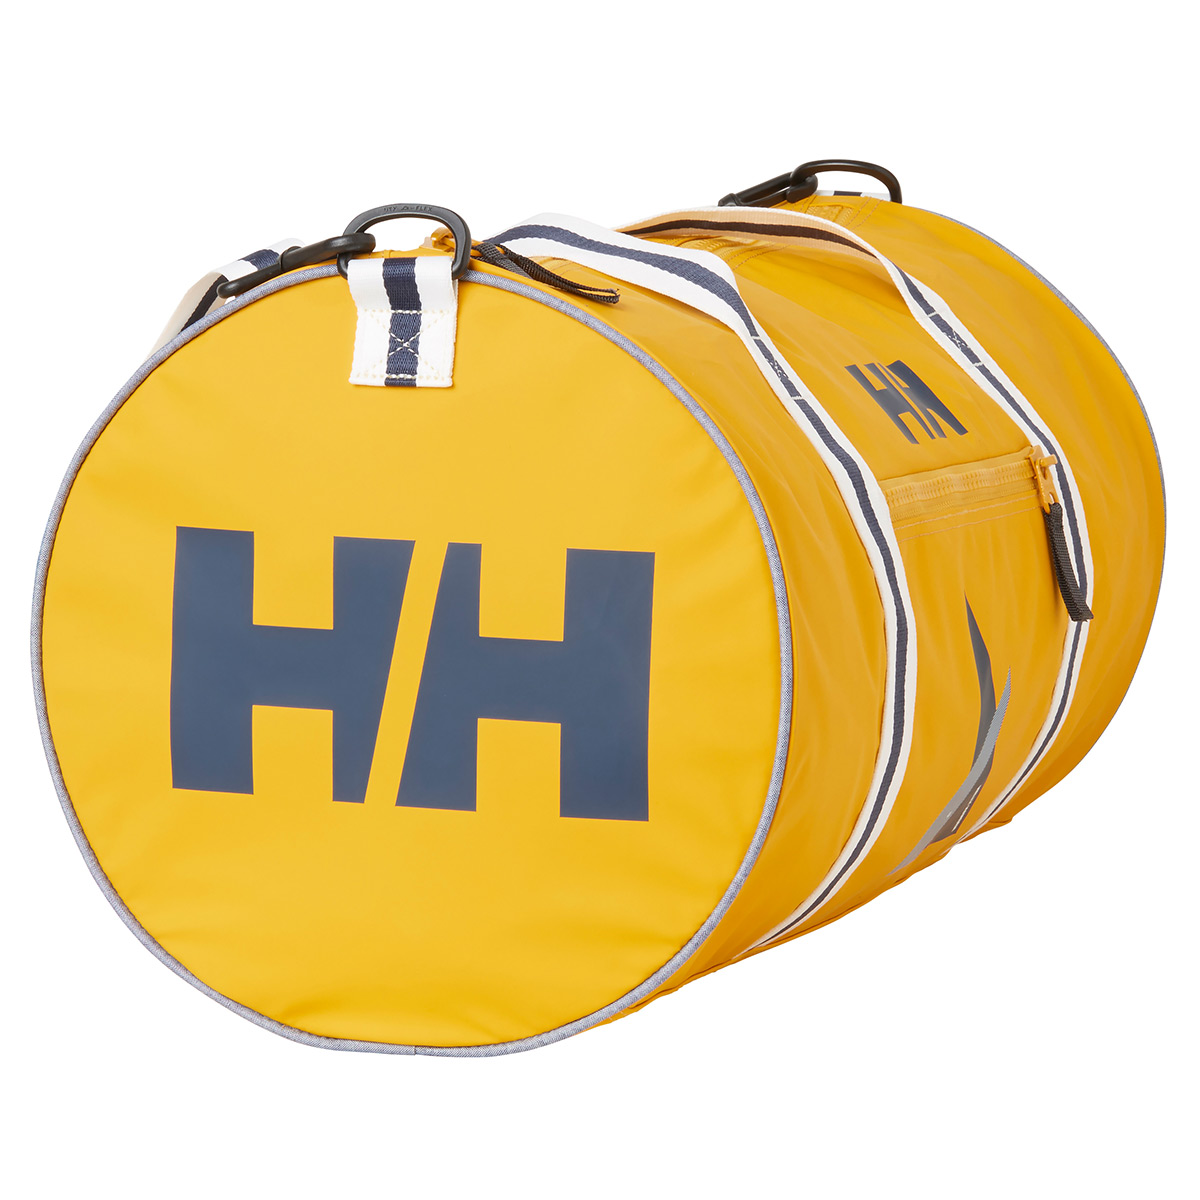 Helly Hansen 2019 HH Travel 32L Beach Bag Holdall Duffel Carry Handle